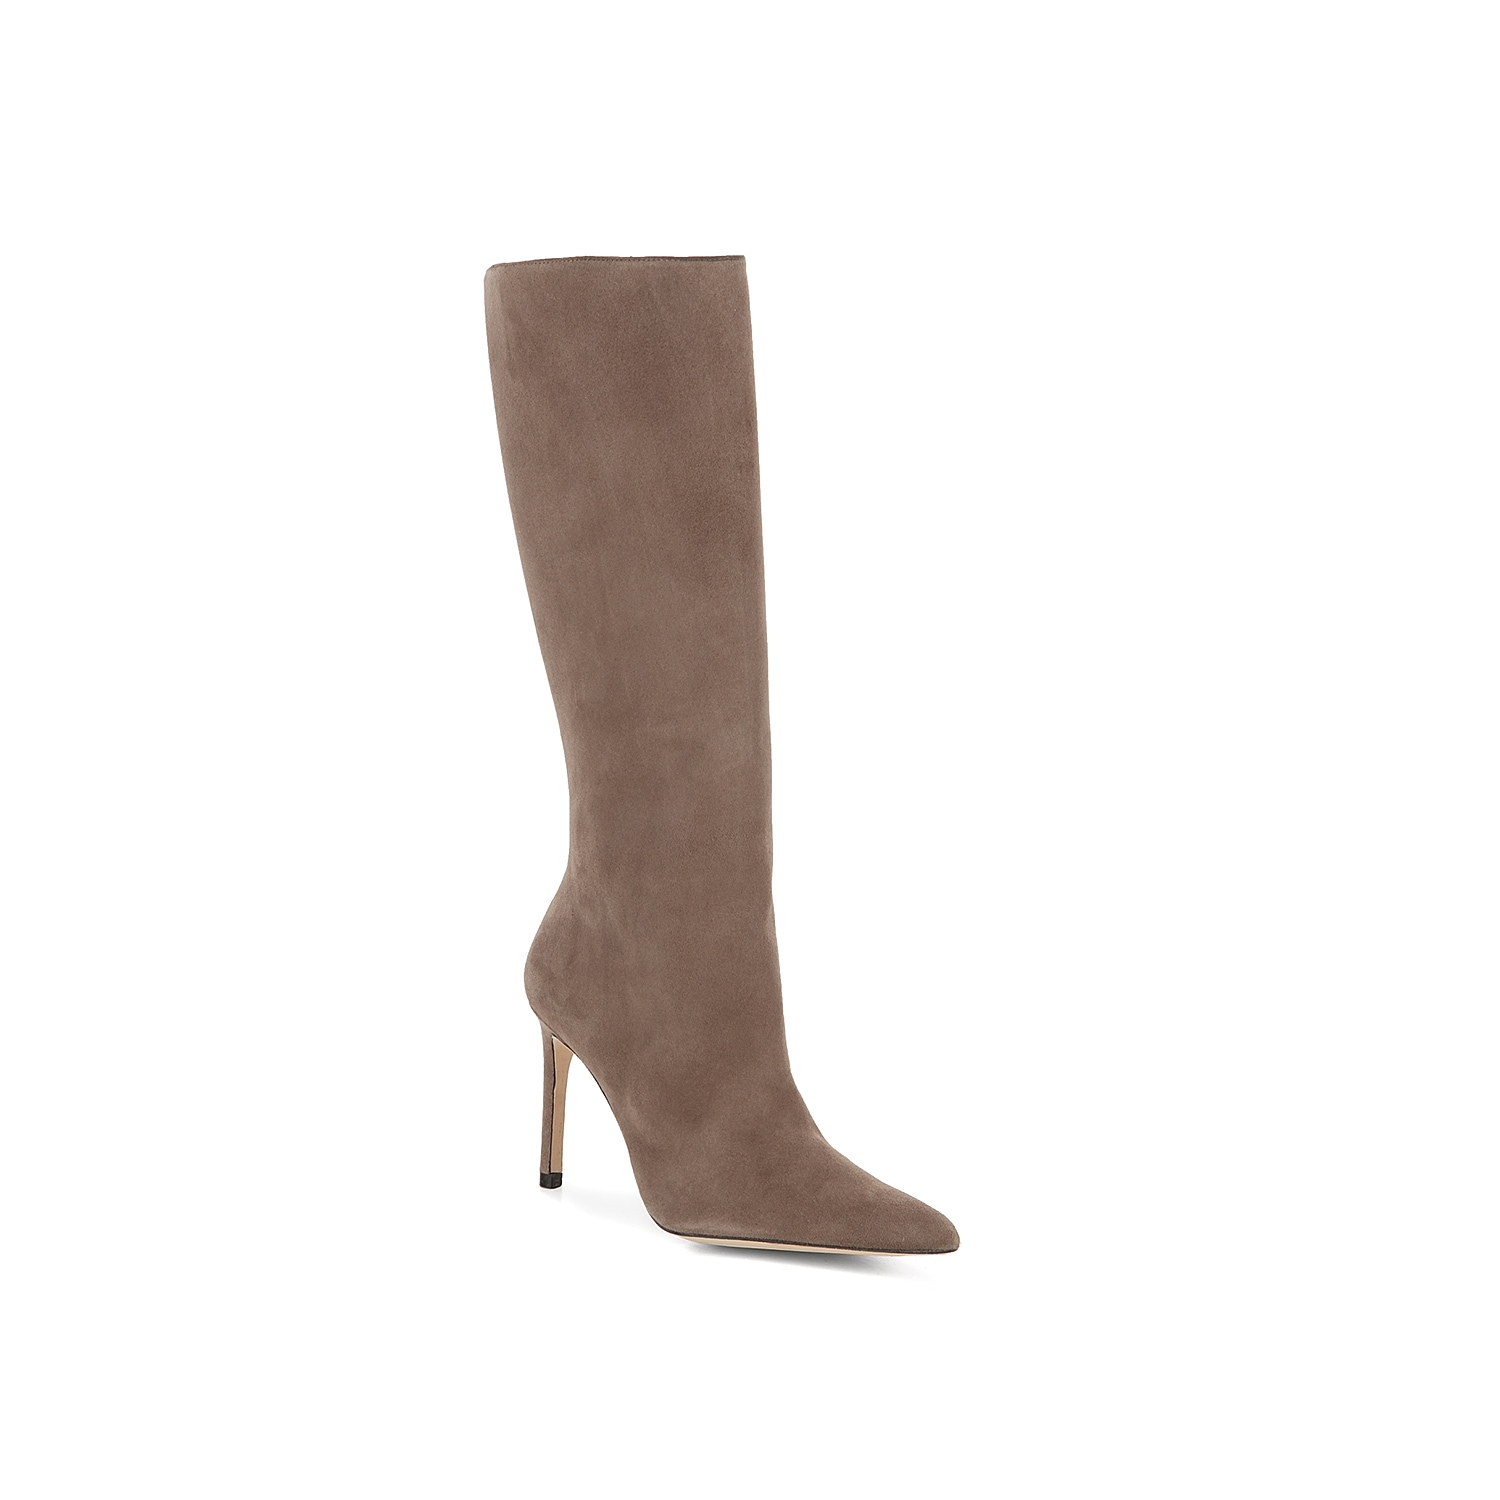 Make your way through any crowd when wearing the sophisticated Porto boot from Alexandre Birman. This sleek pair is fashioned with a soft suede and pointy toe for an elongated look! Click here for Boot Measuring Guide.